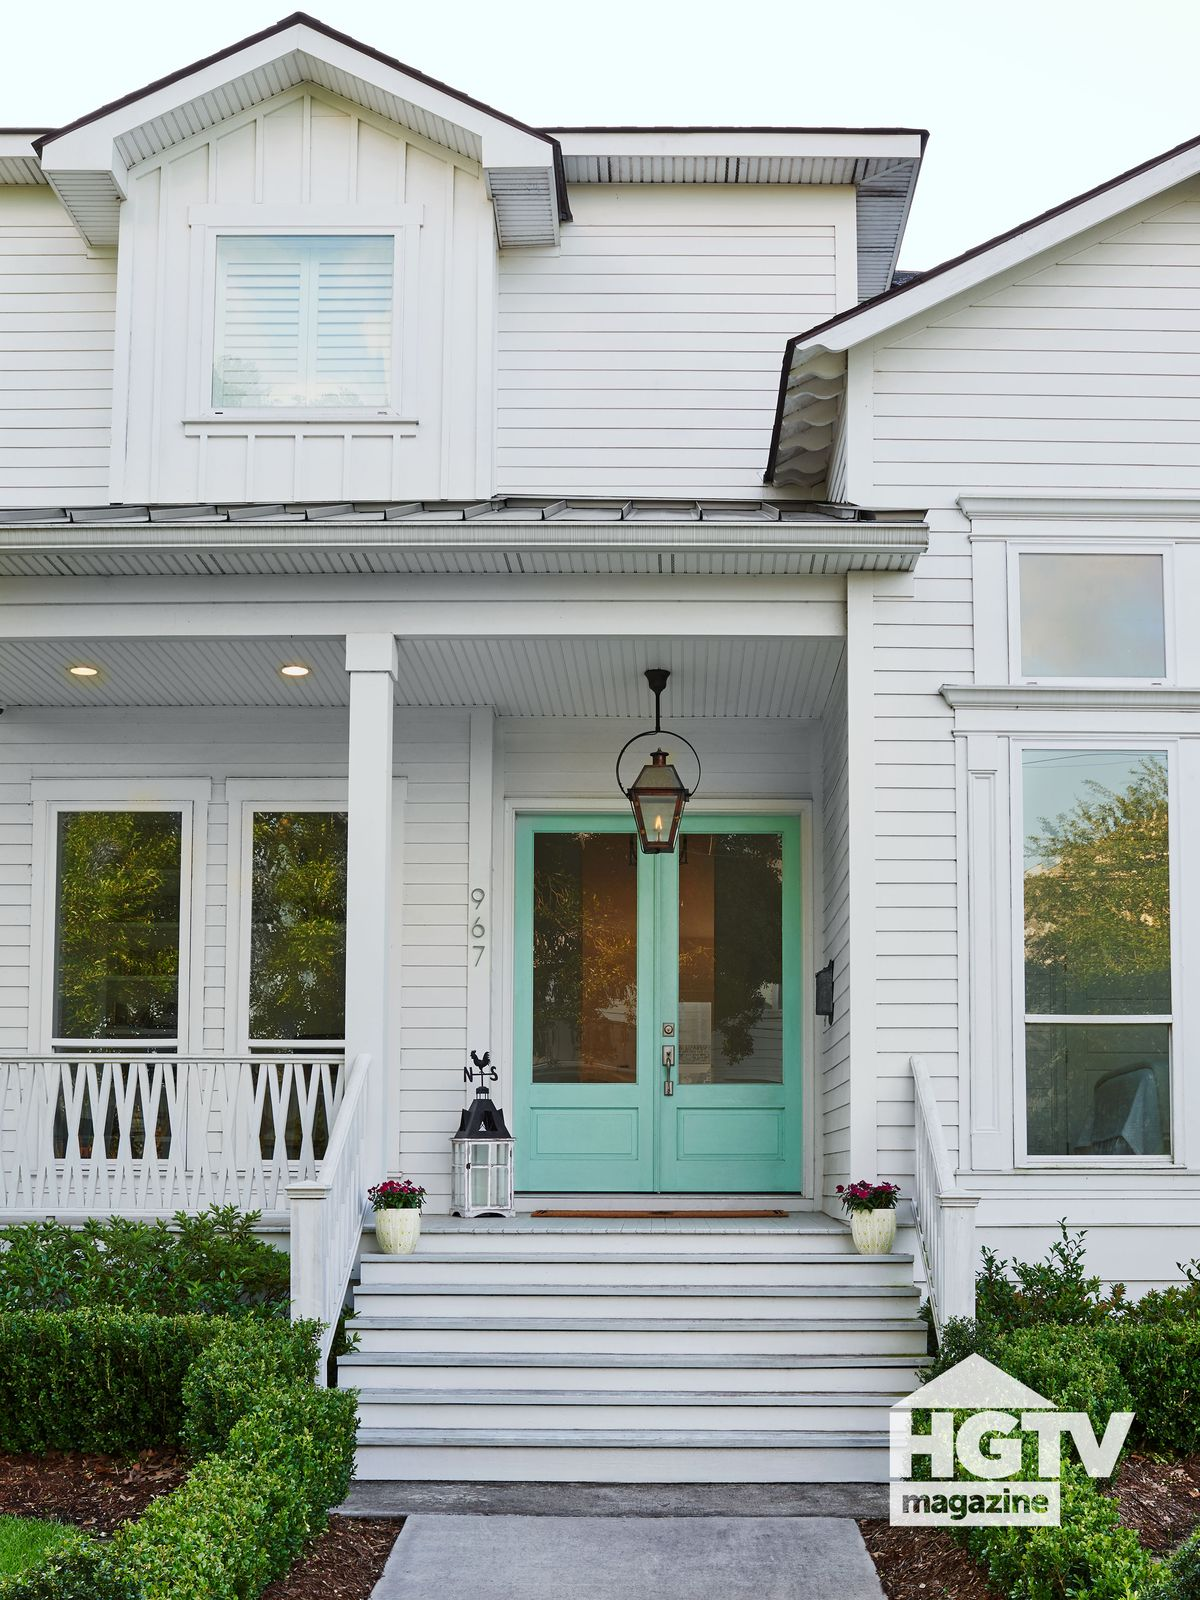 A white and teal home from HGTV Magazine